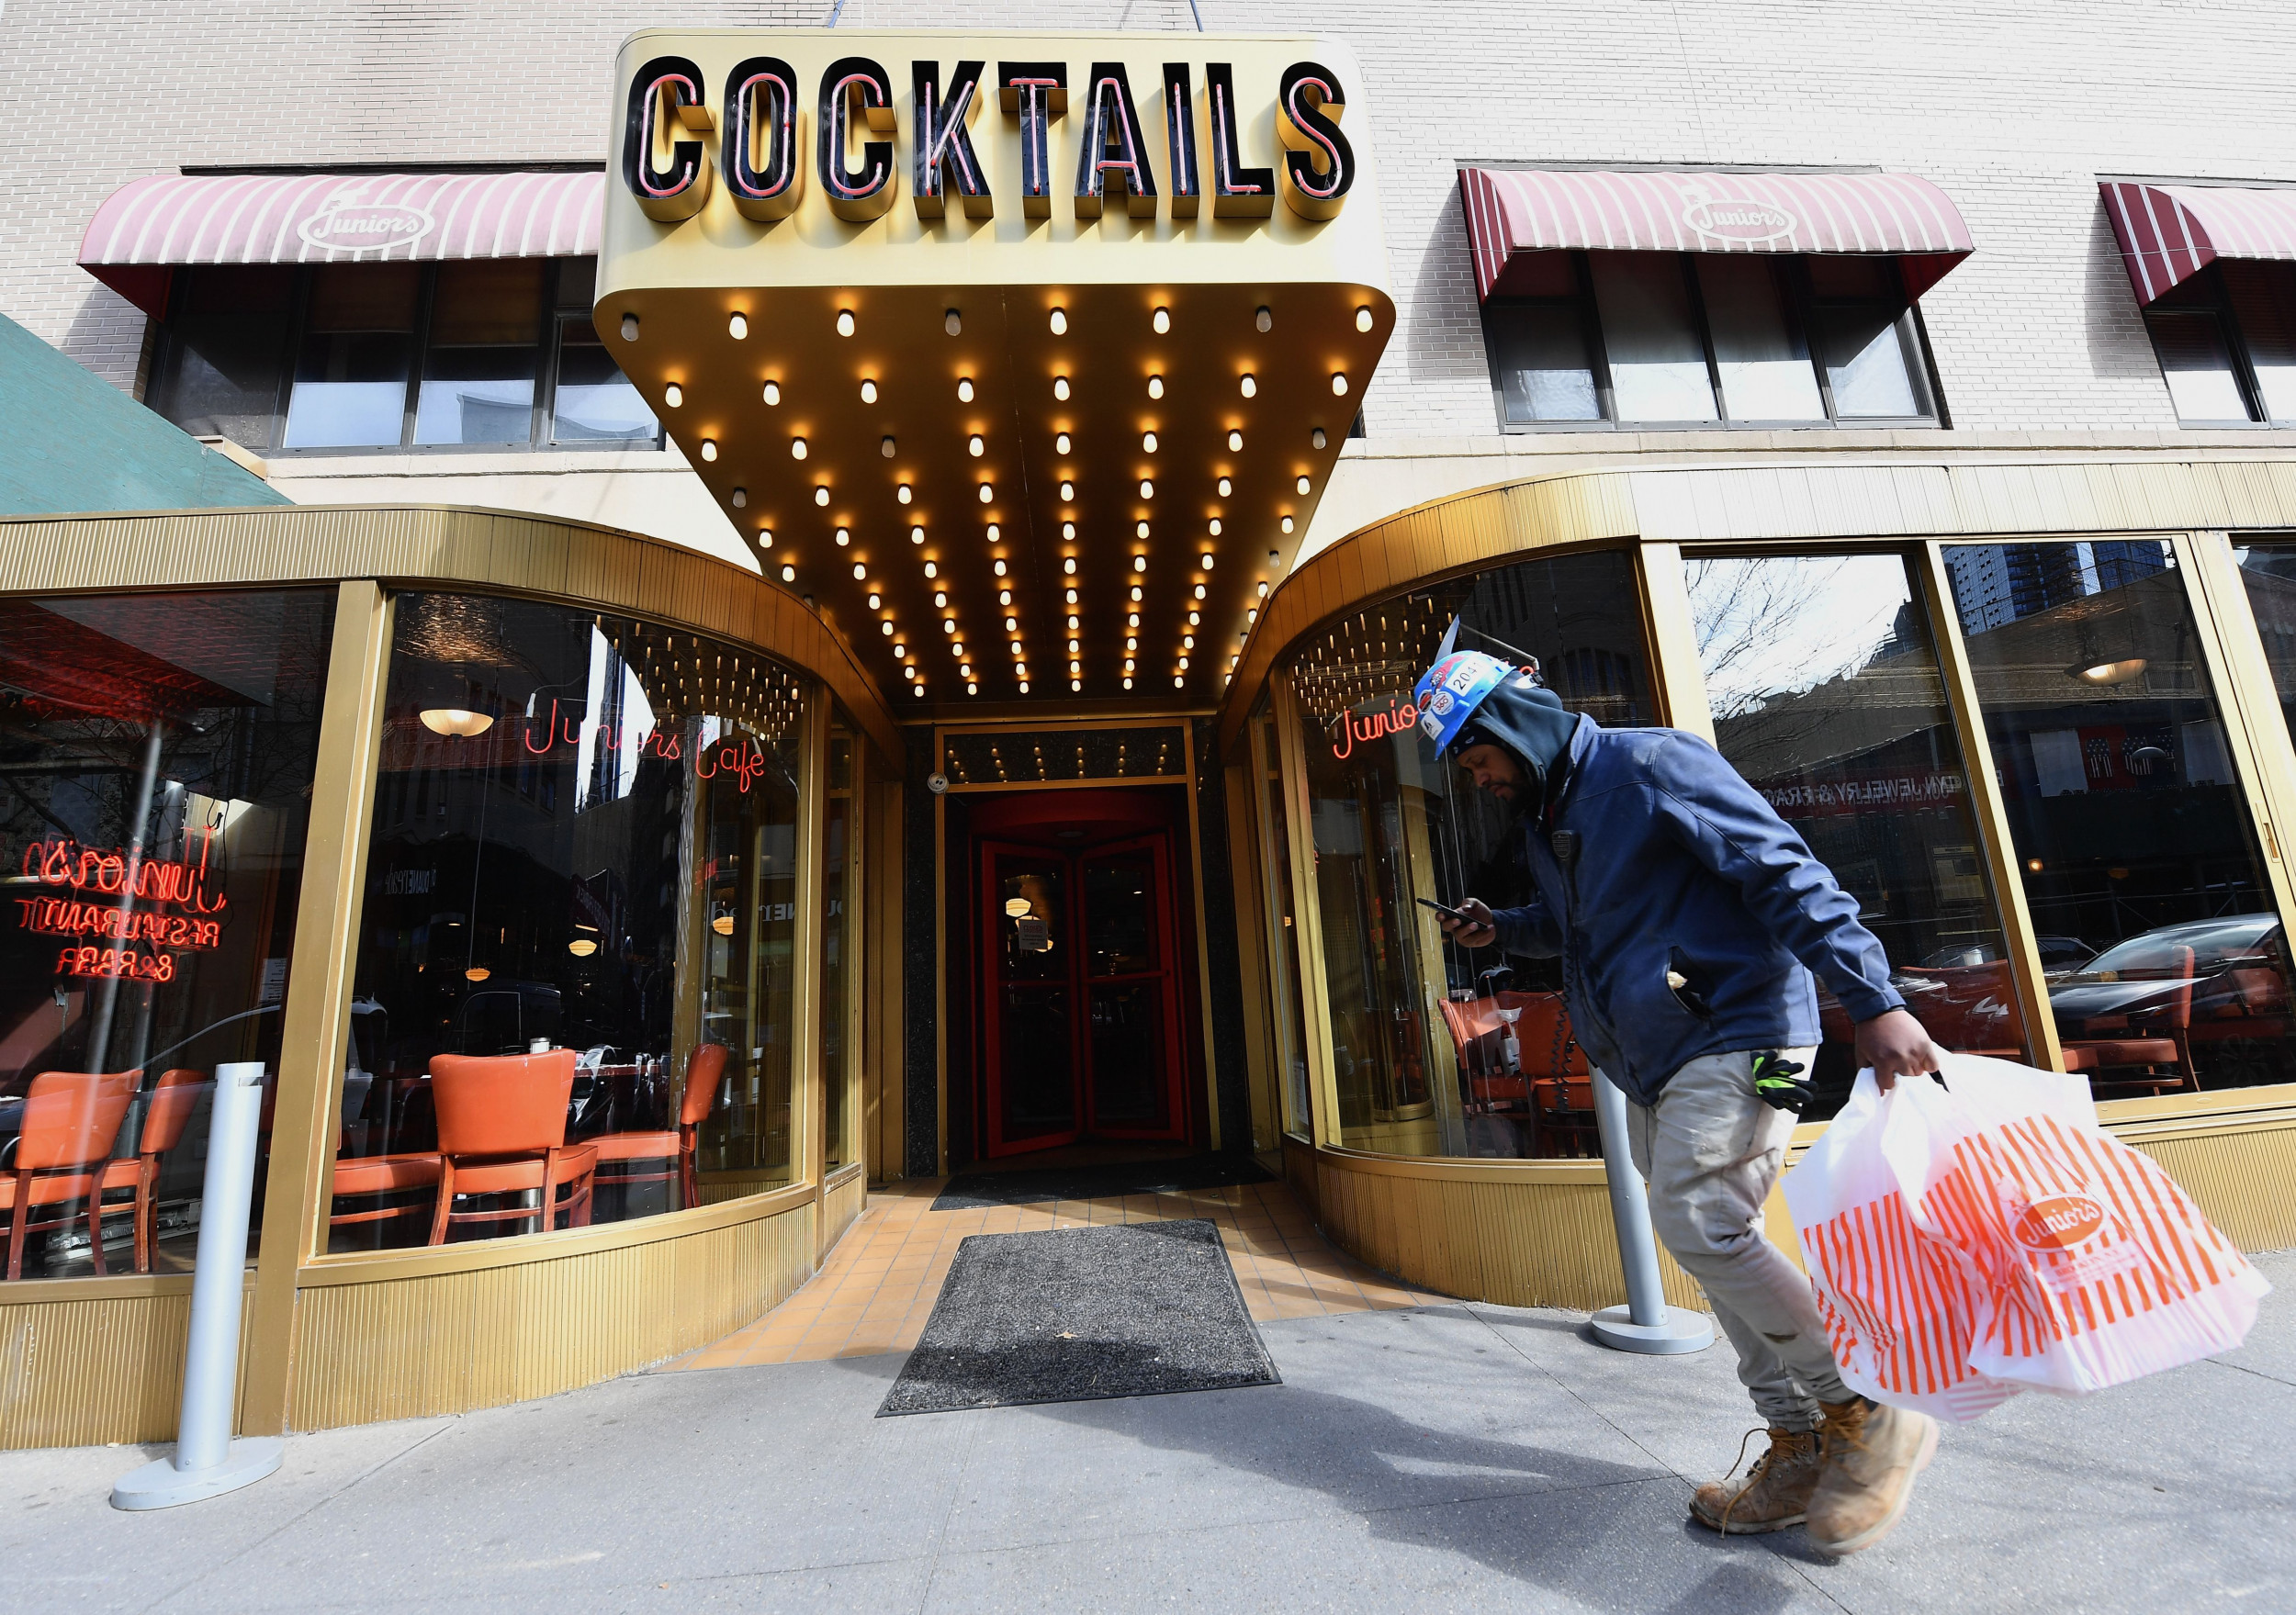 New York To Allow Takeout Alcohol To Help Bars, Restaurants During Coronavirus Shutdown, Cuomo Says photo